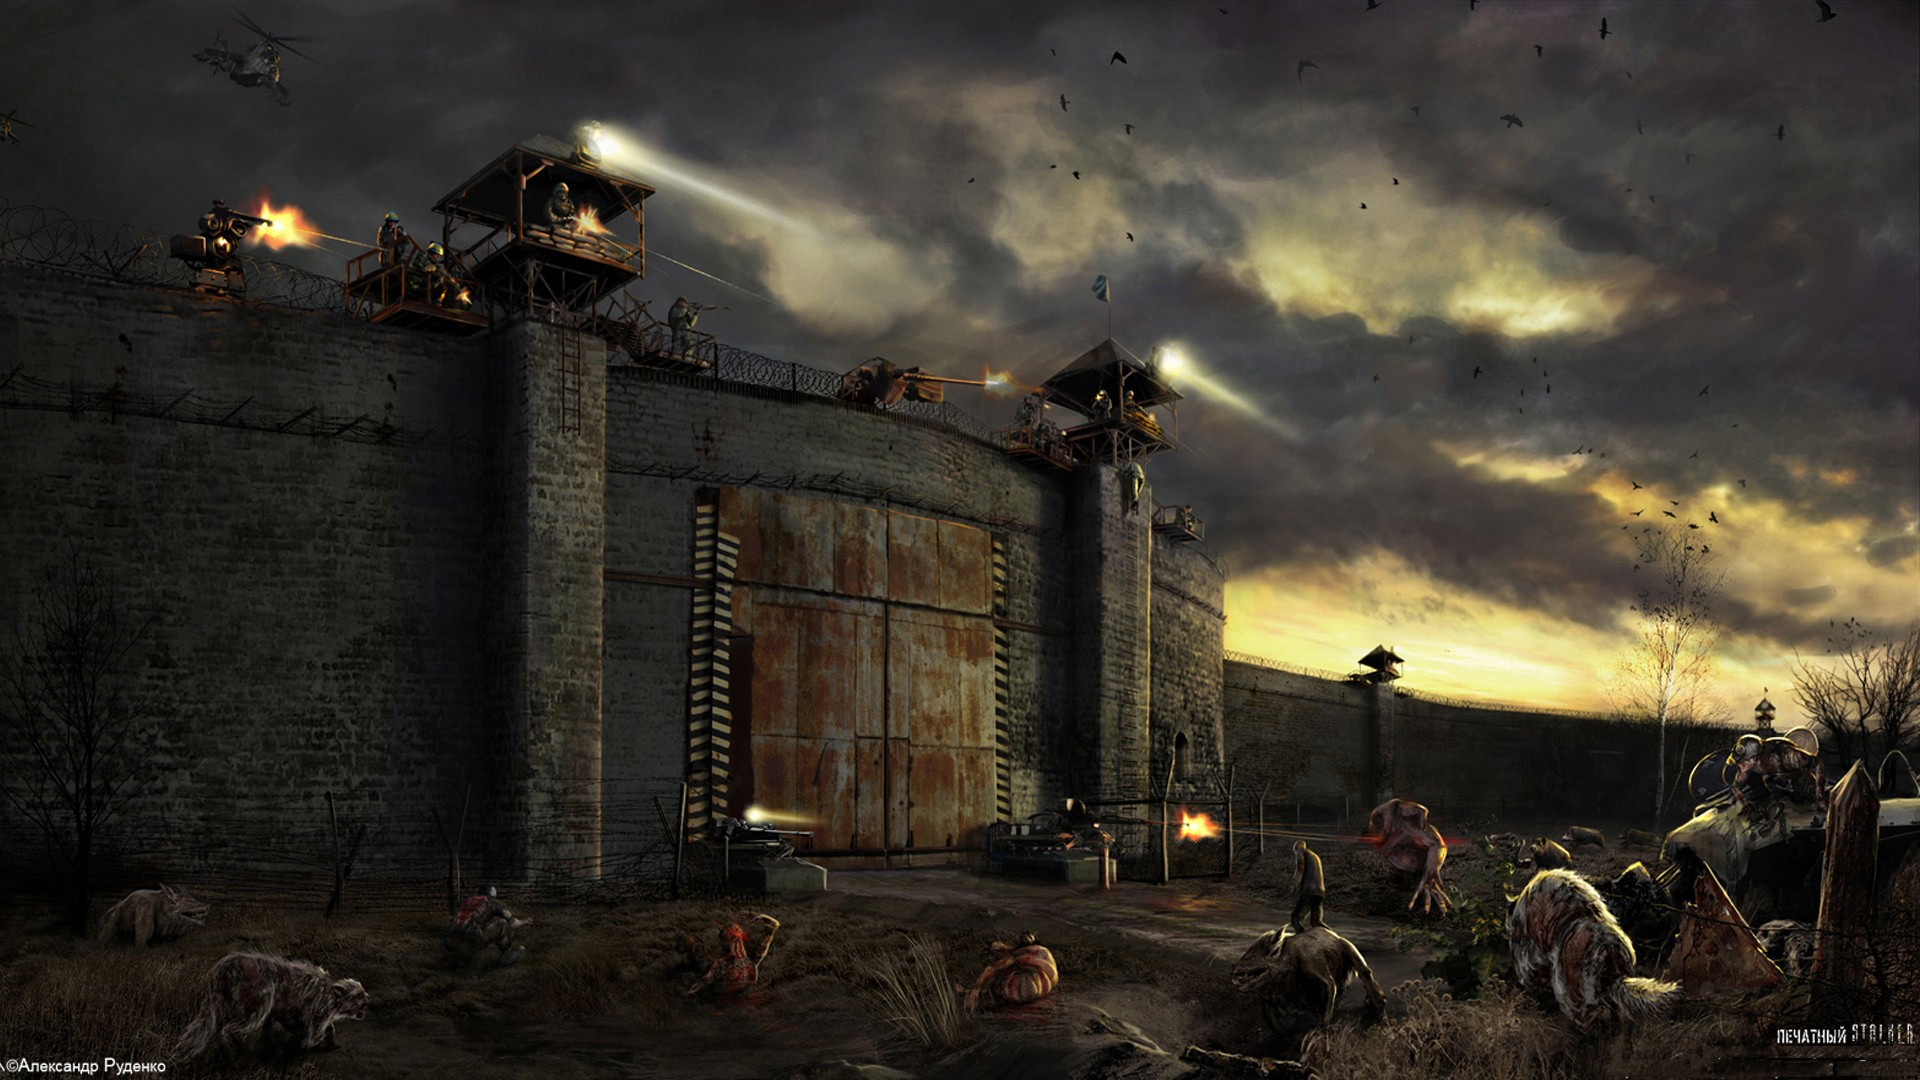 50+] Post Apocalypse Wallpaper on